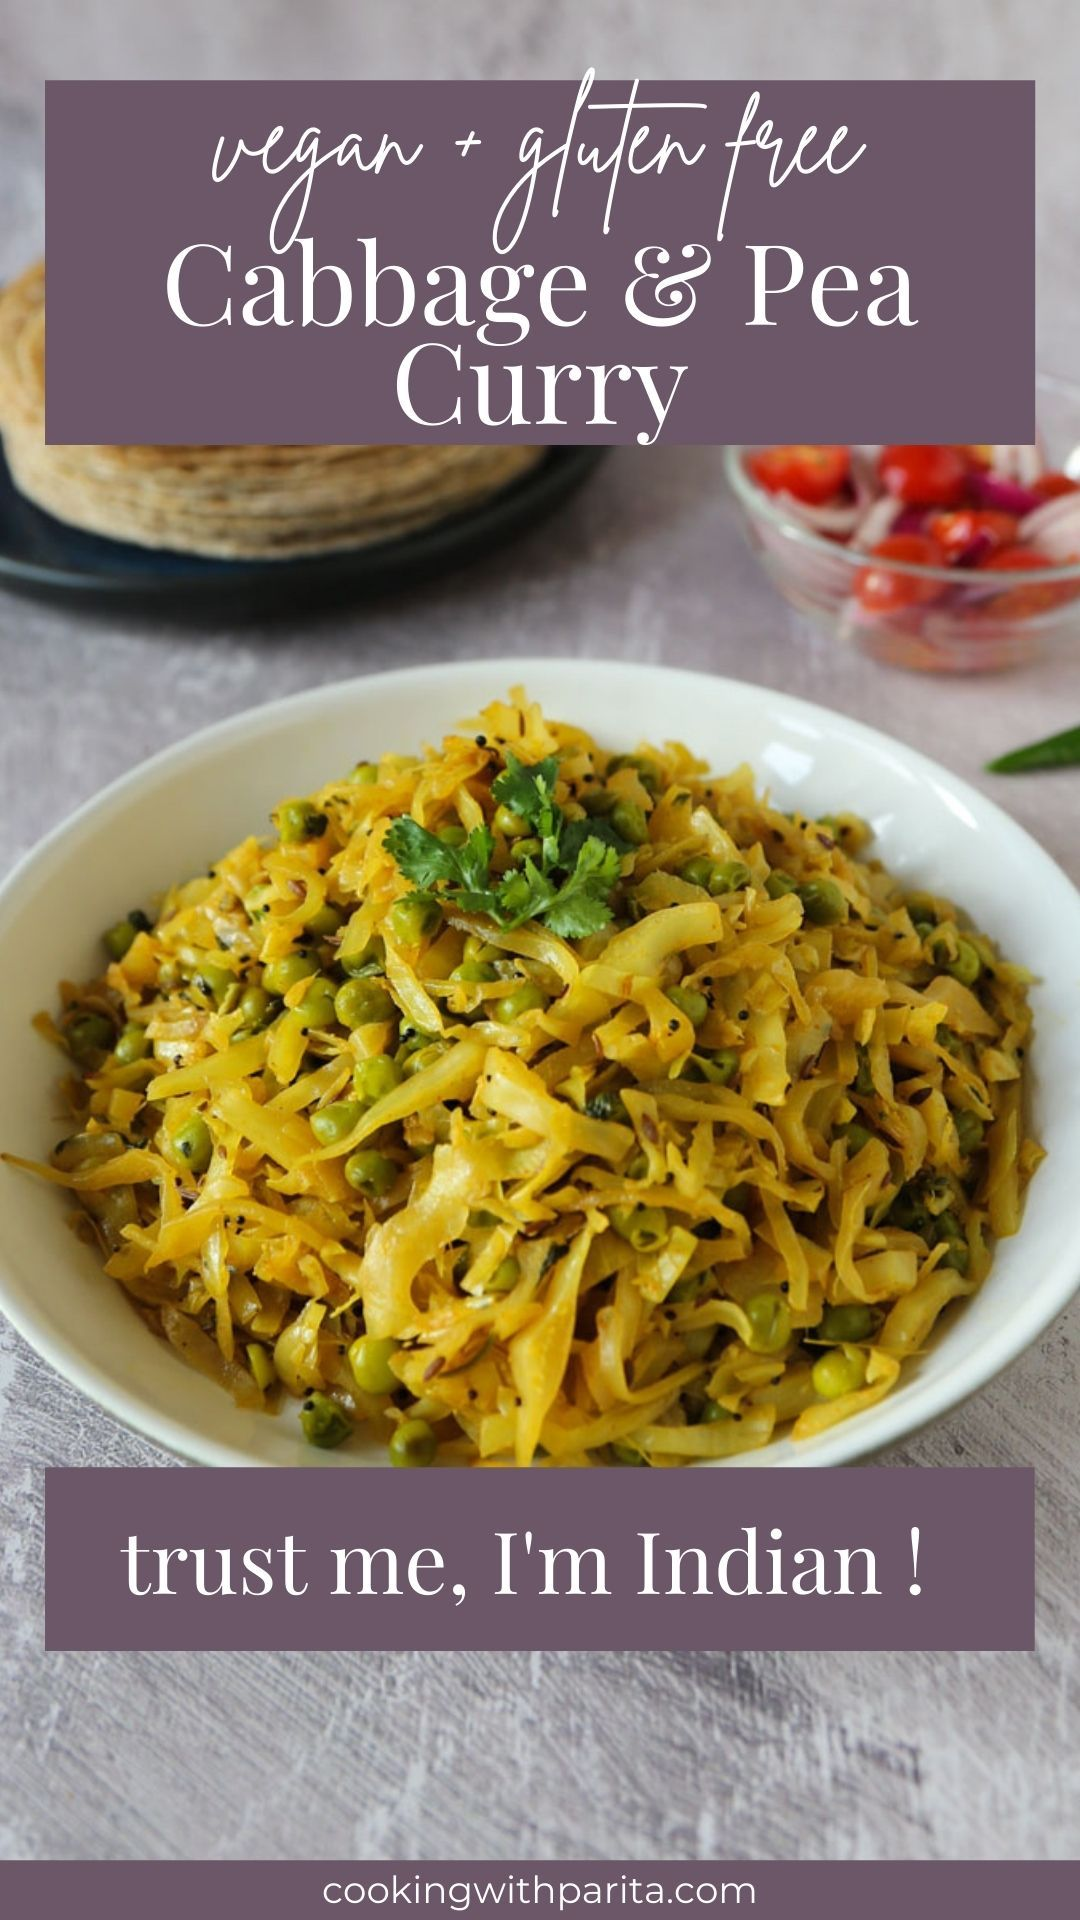 Cabbage and Pea Indian Curry - Plant Based Vegan R